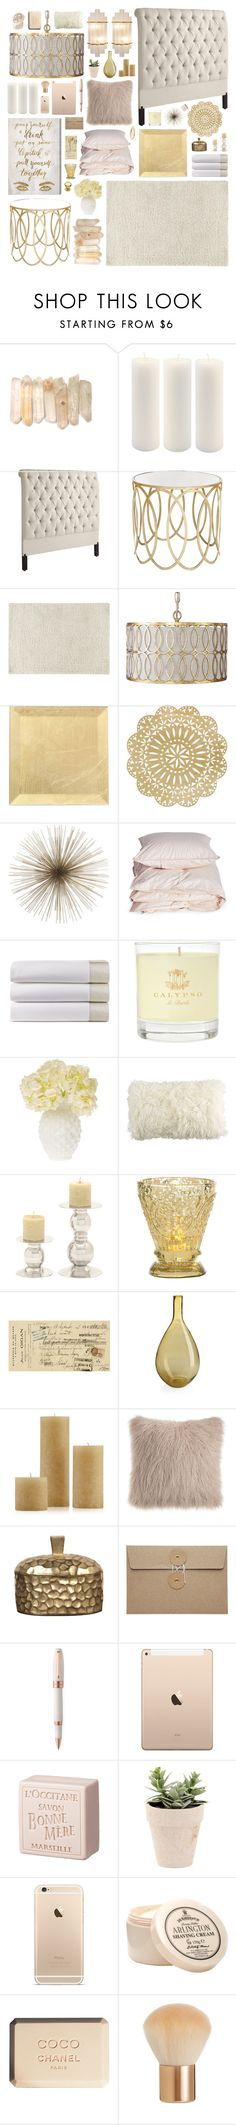 """Romantic Bedroom Decor"" by belenloperfido ❤ liked on Polyvore featuring interior, interiors, interior design, home, home decor, interior decorating, Root Candles, Worlds Away, Gabby and Mitchell Gold + Bob Williams"